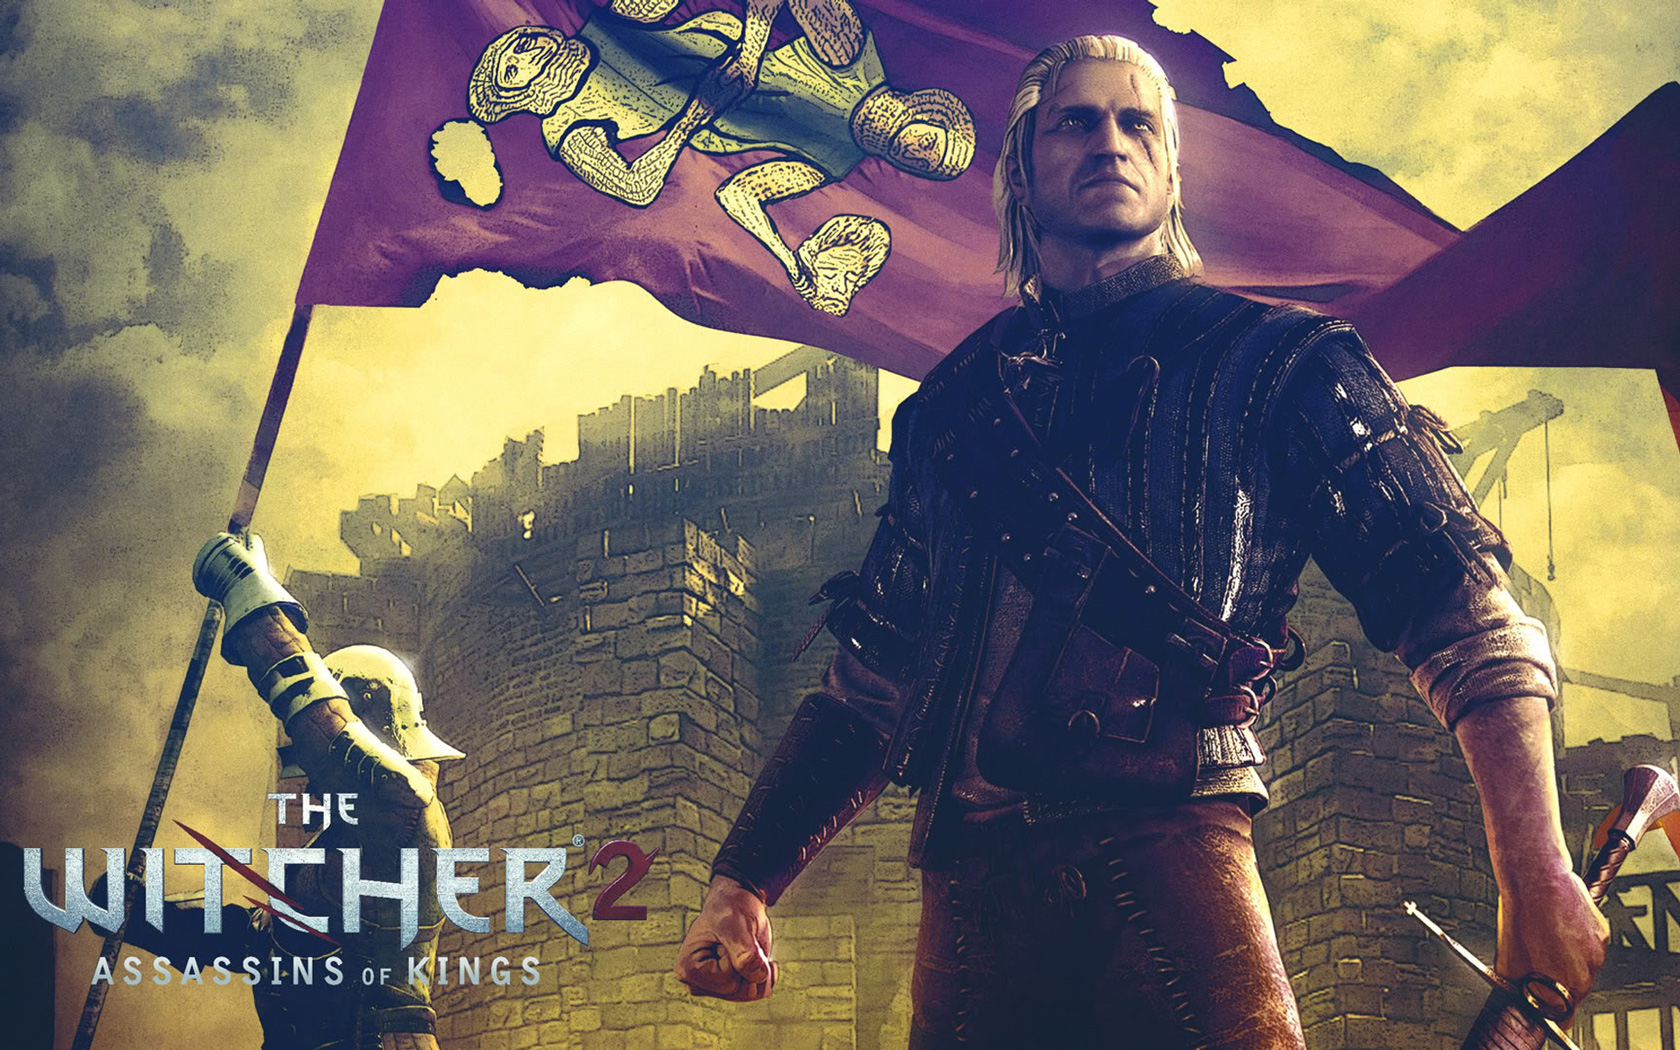 Free The Witcher 2 Wallpaper in 1680x1050